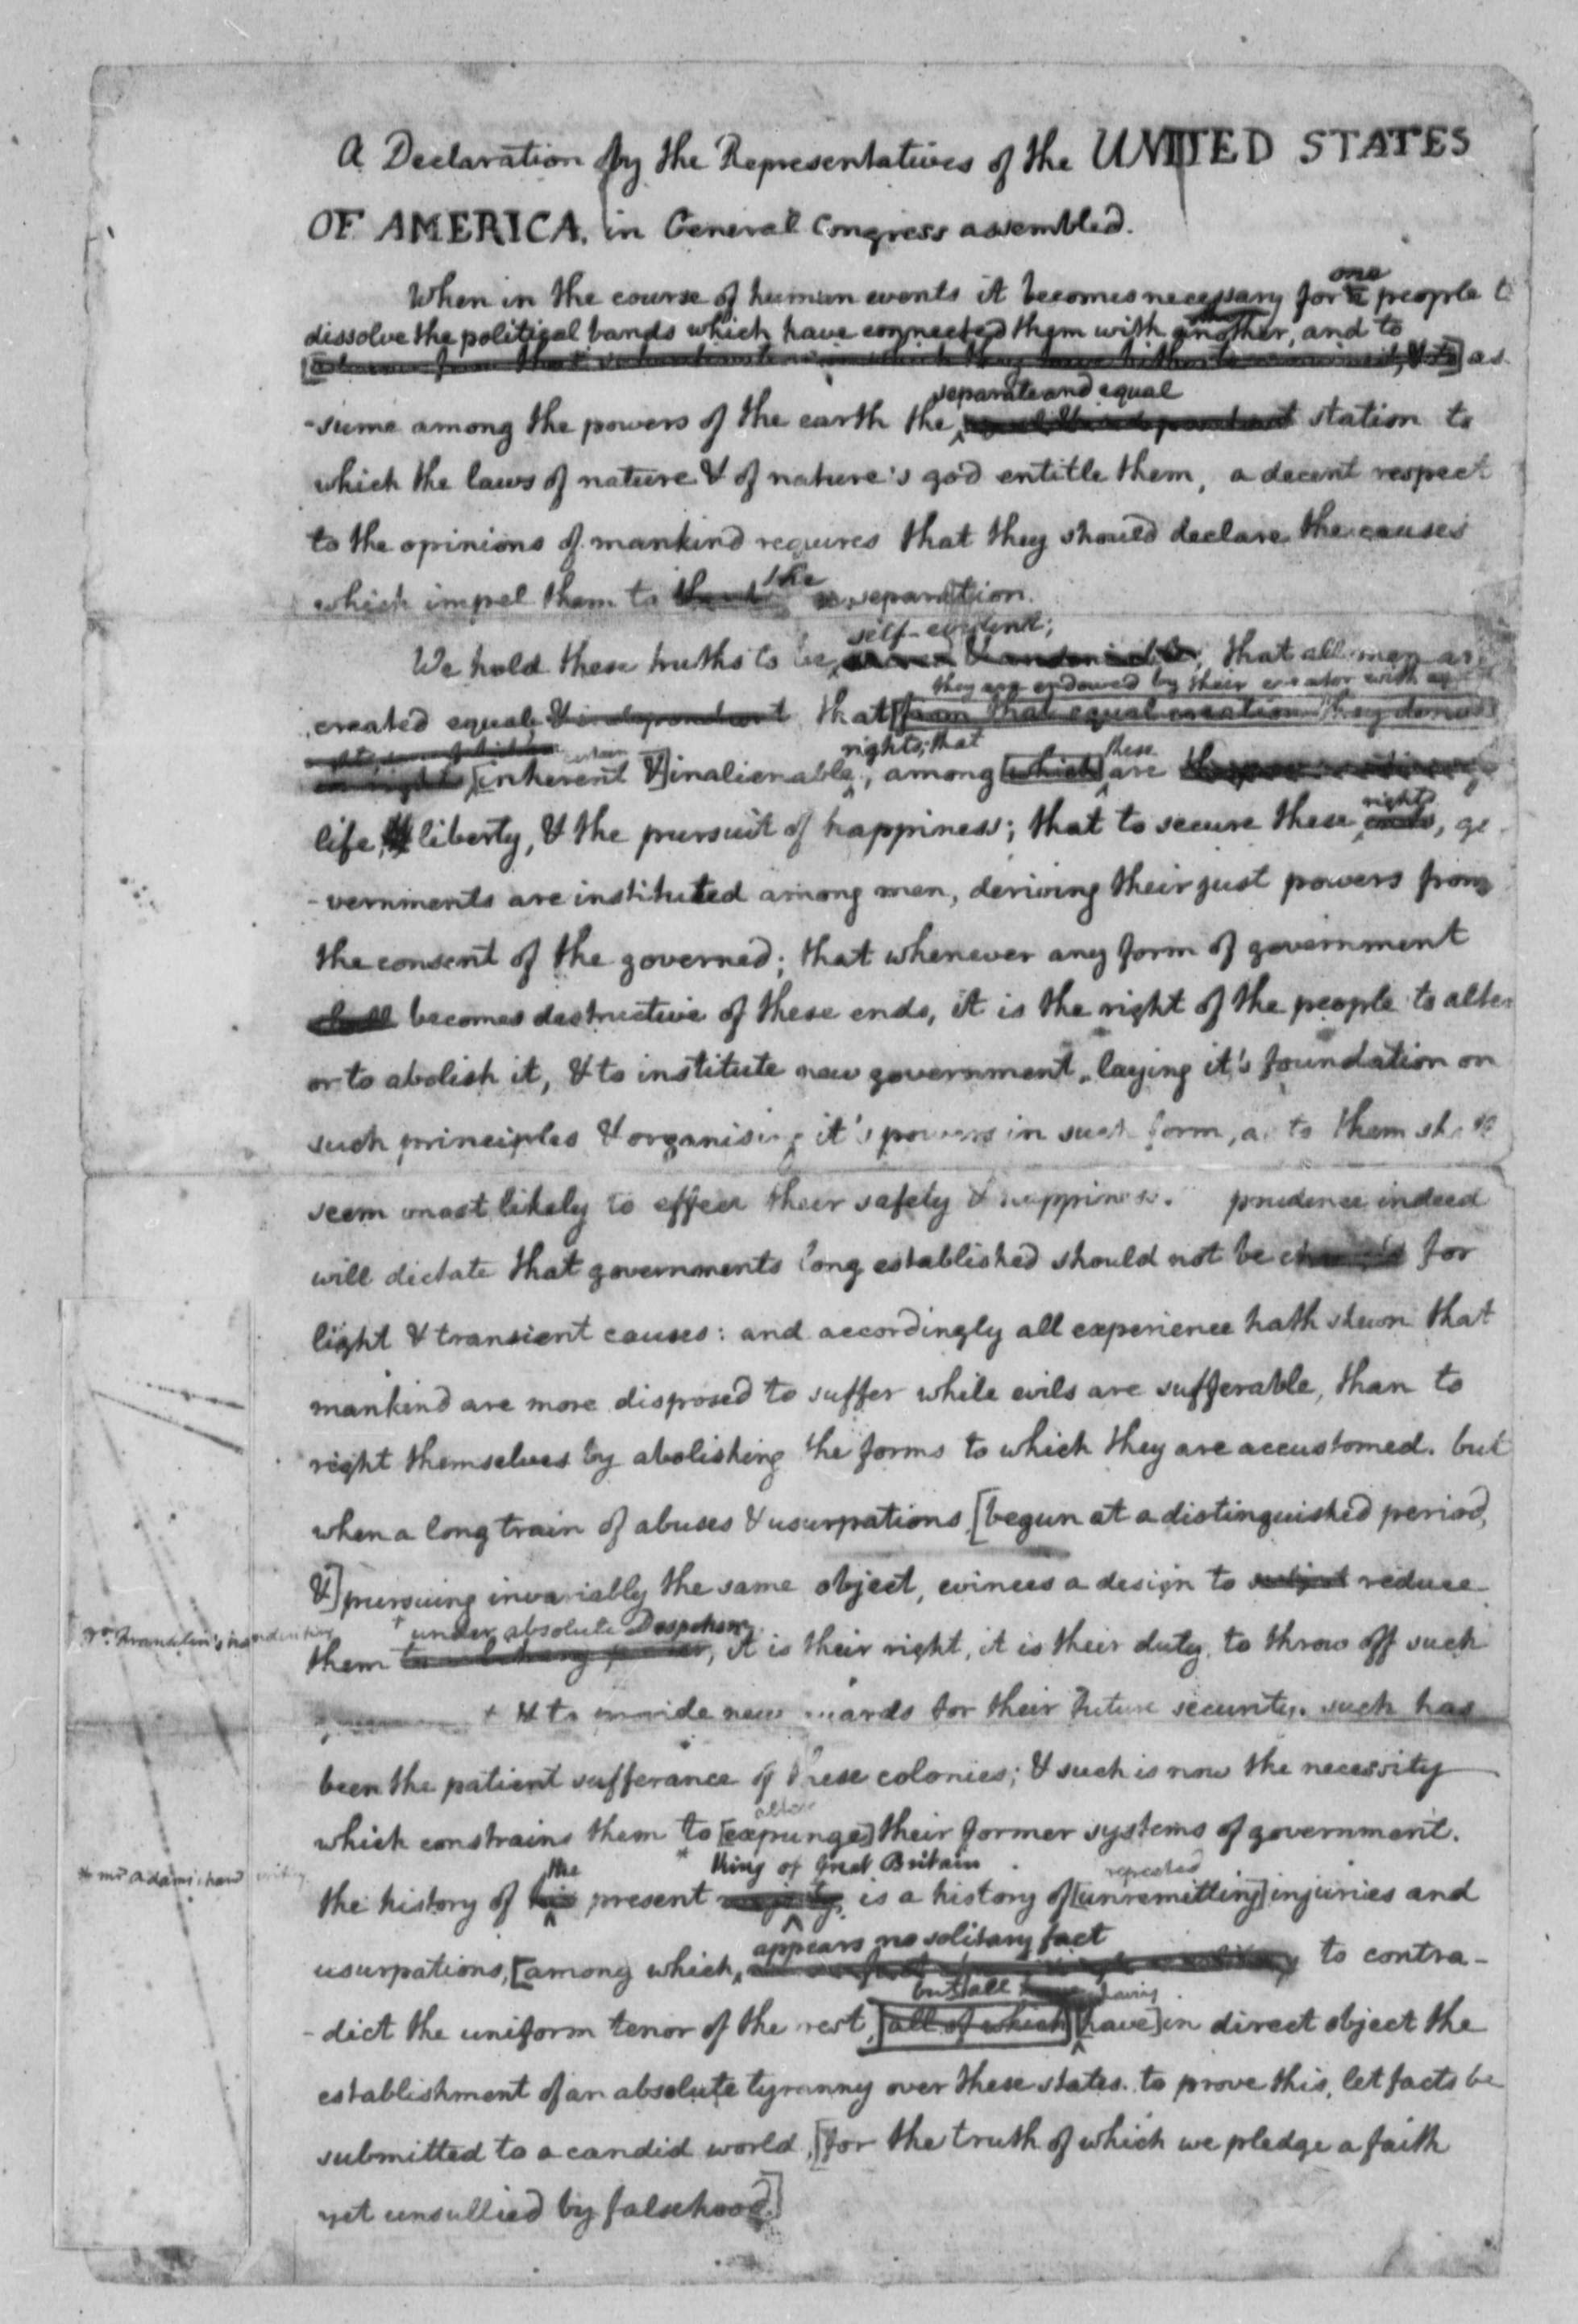 004 Thomas Jefferson Essay 3753820390 Slavery Magnificent On Education Questions Outline Full